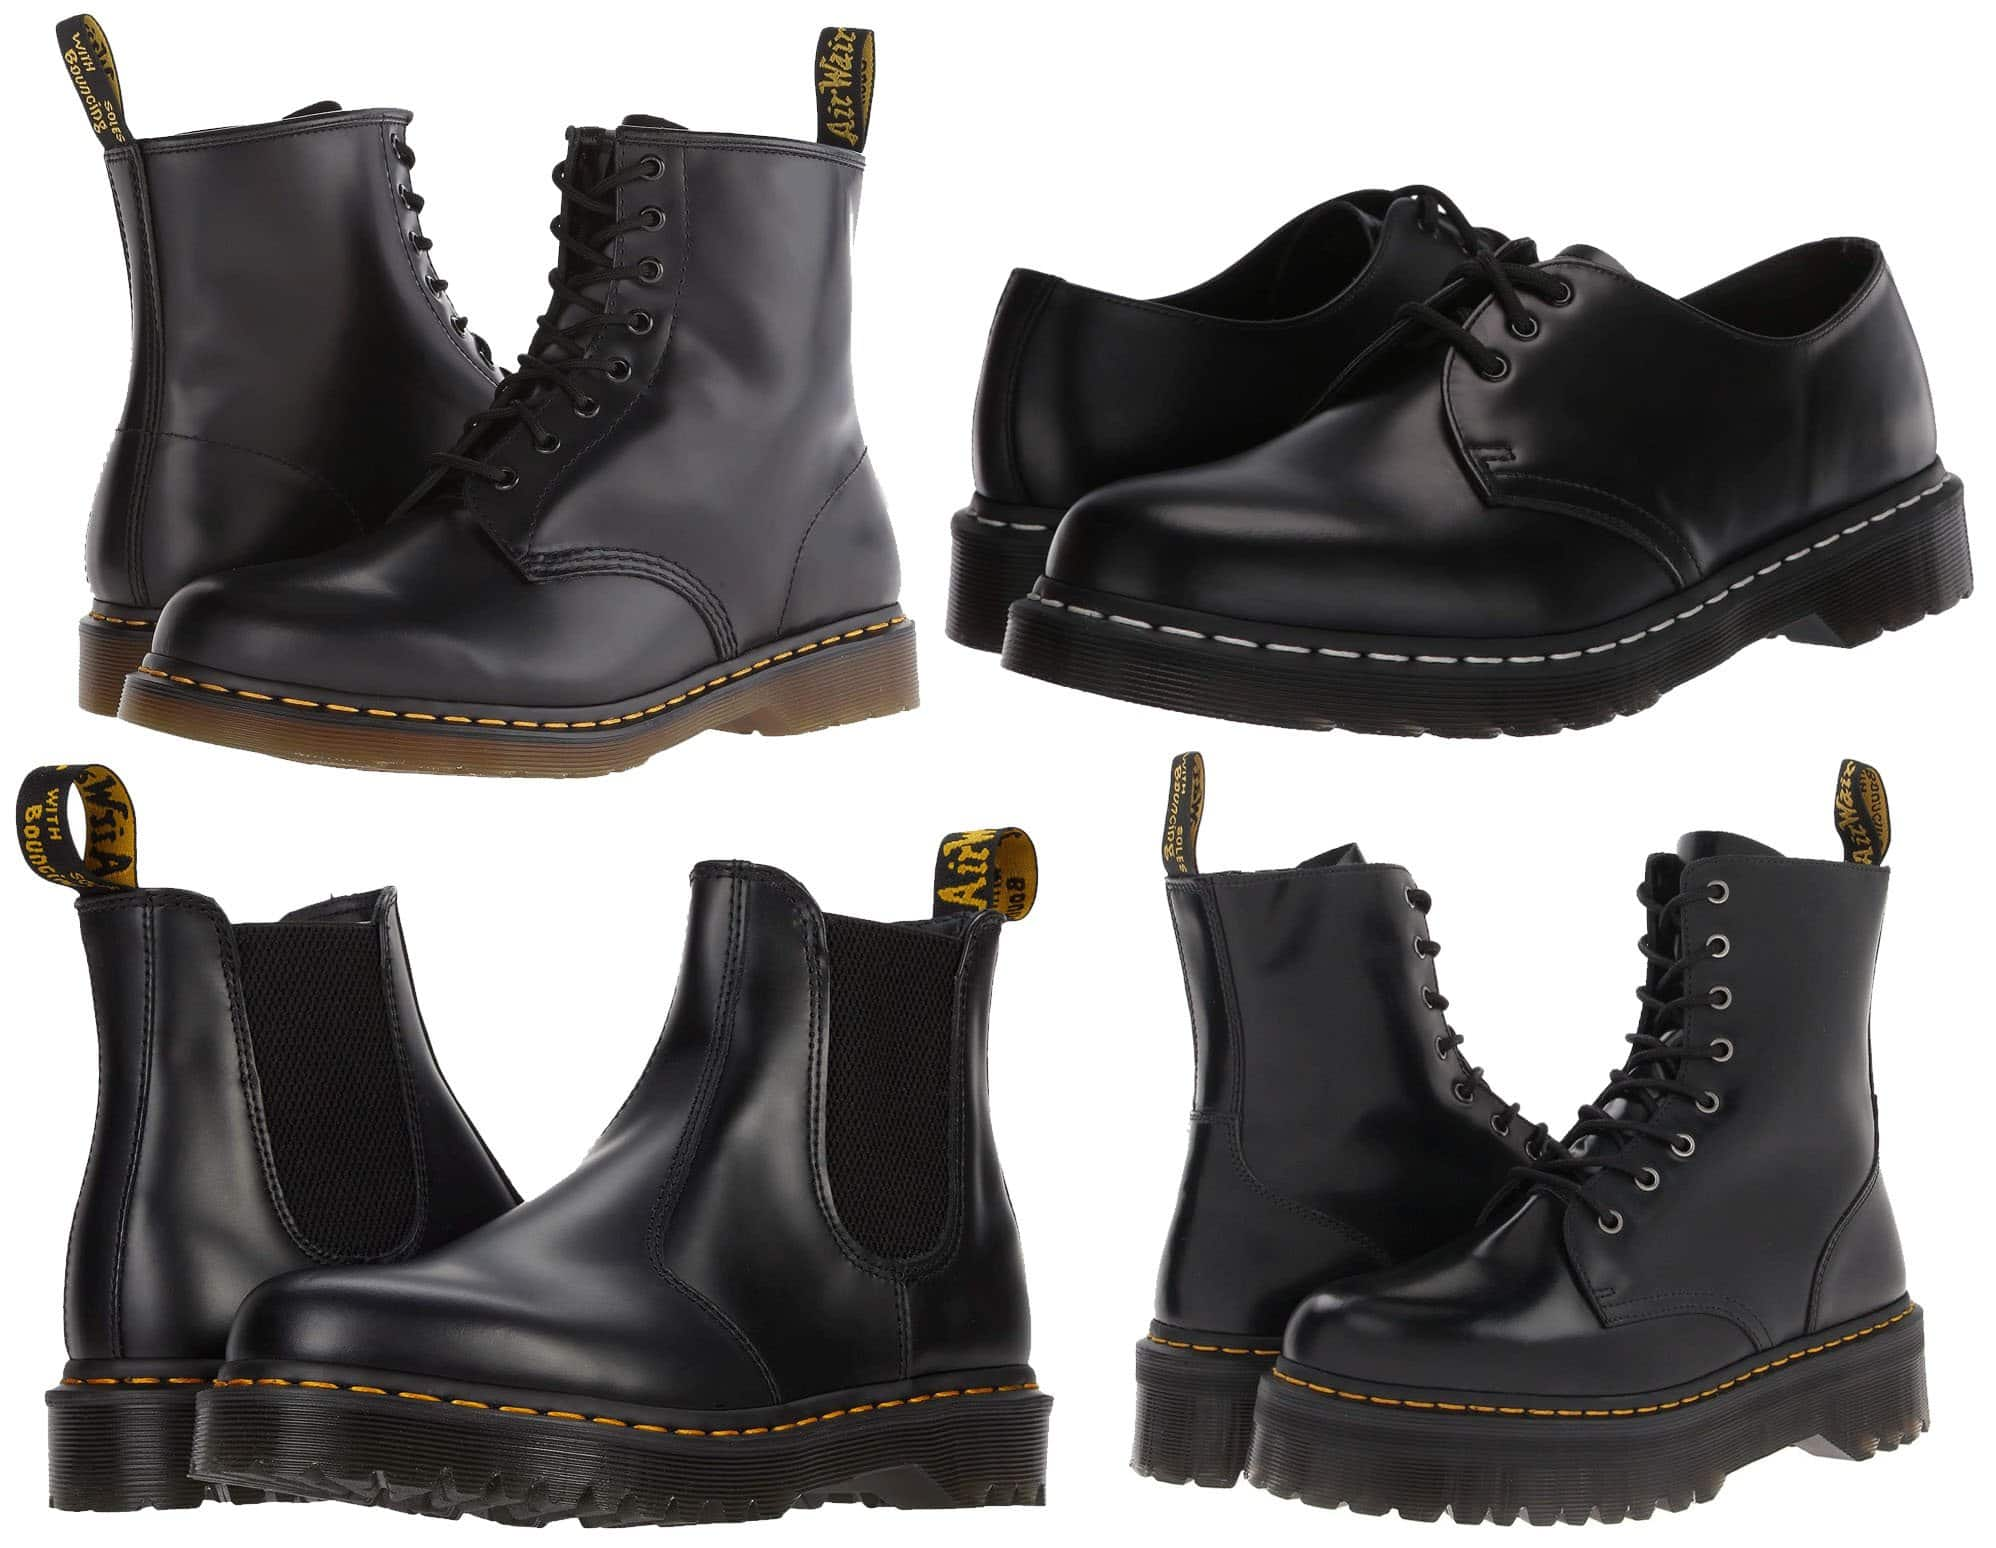 For affordable yet durable footwear that will last for years, go with Dr. Martens' classic silhouettes